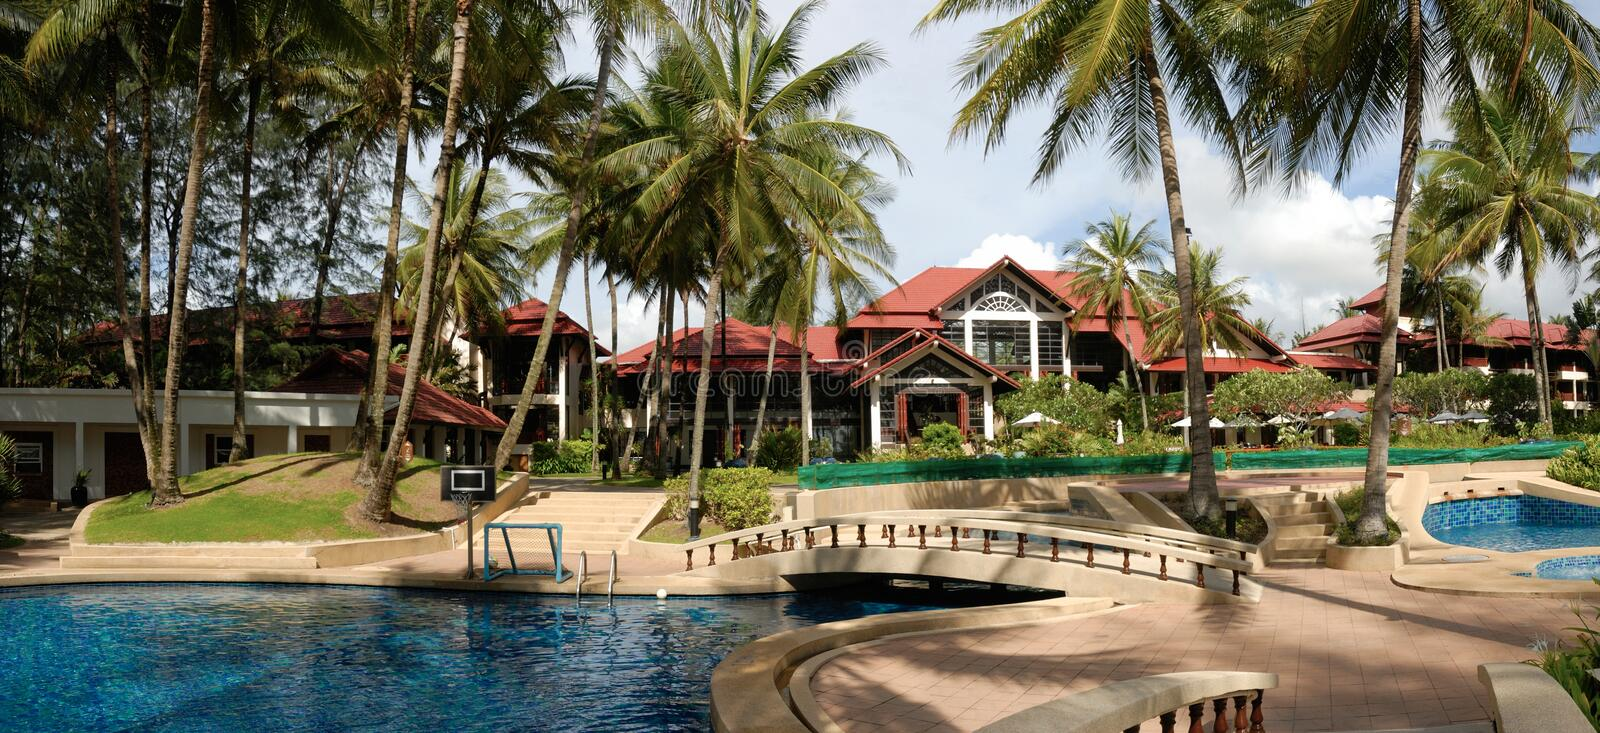 Hotel Poolside Thai Architecture Royalty Free Stock Images